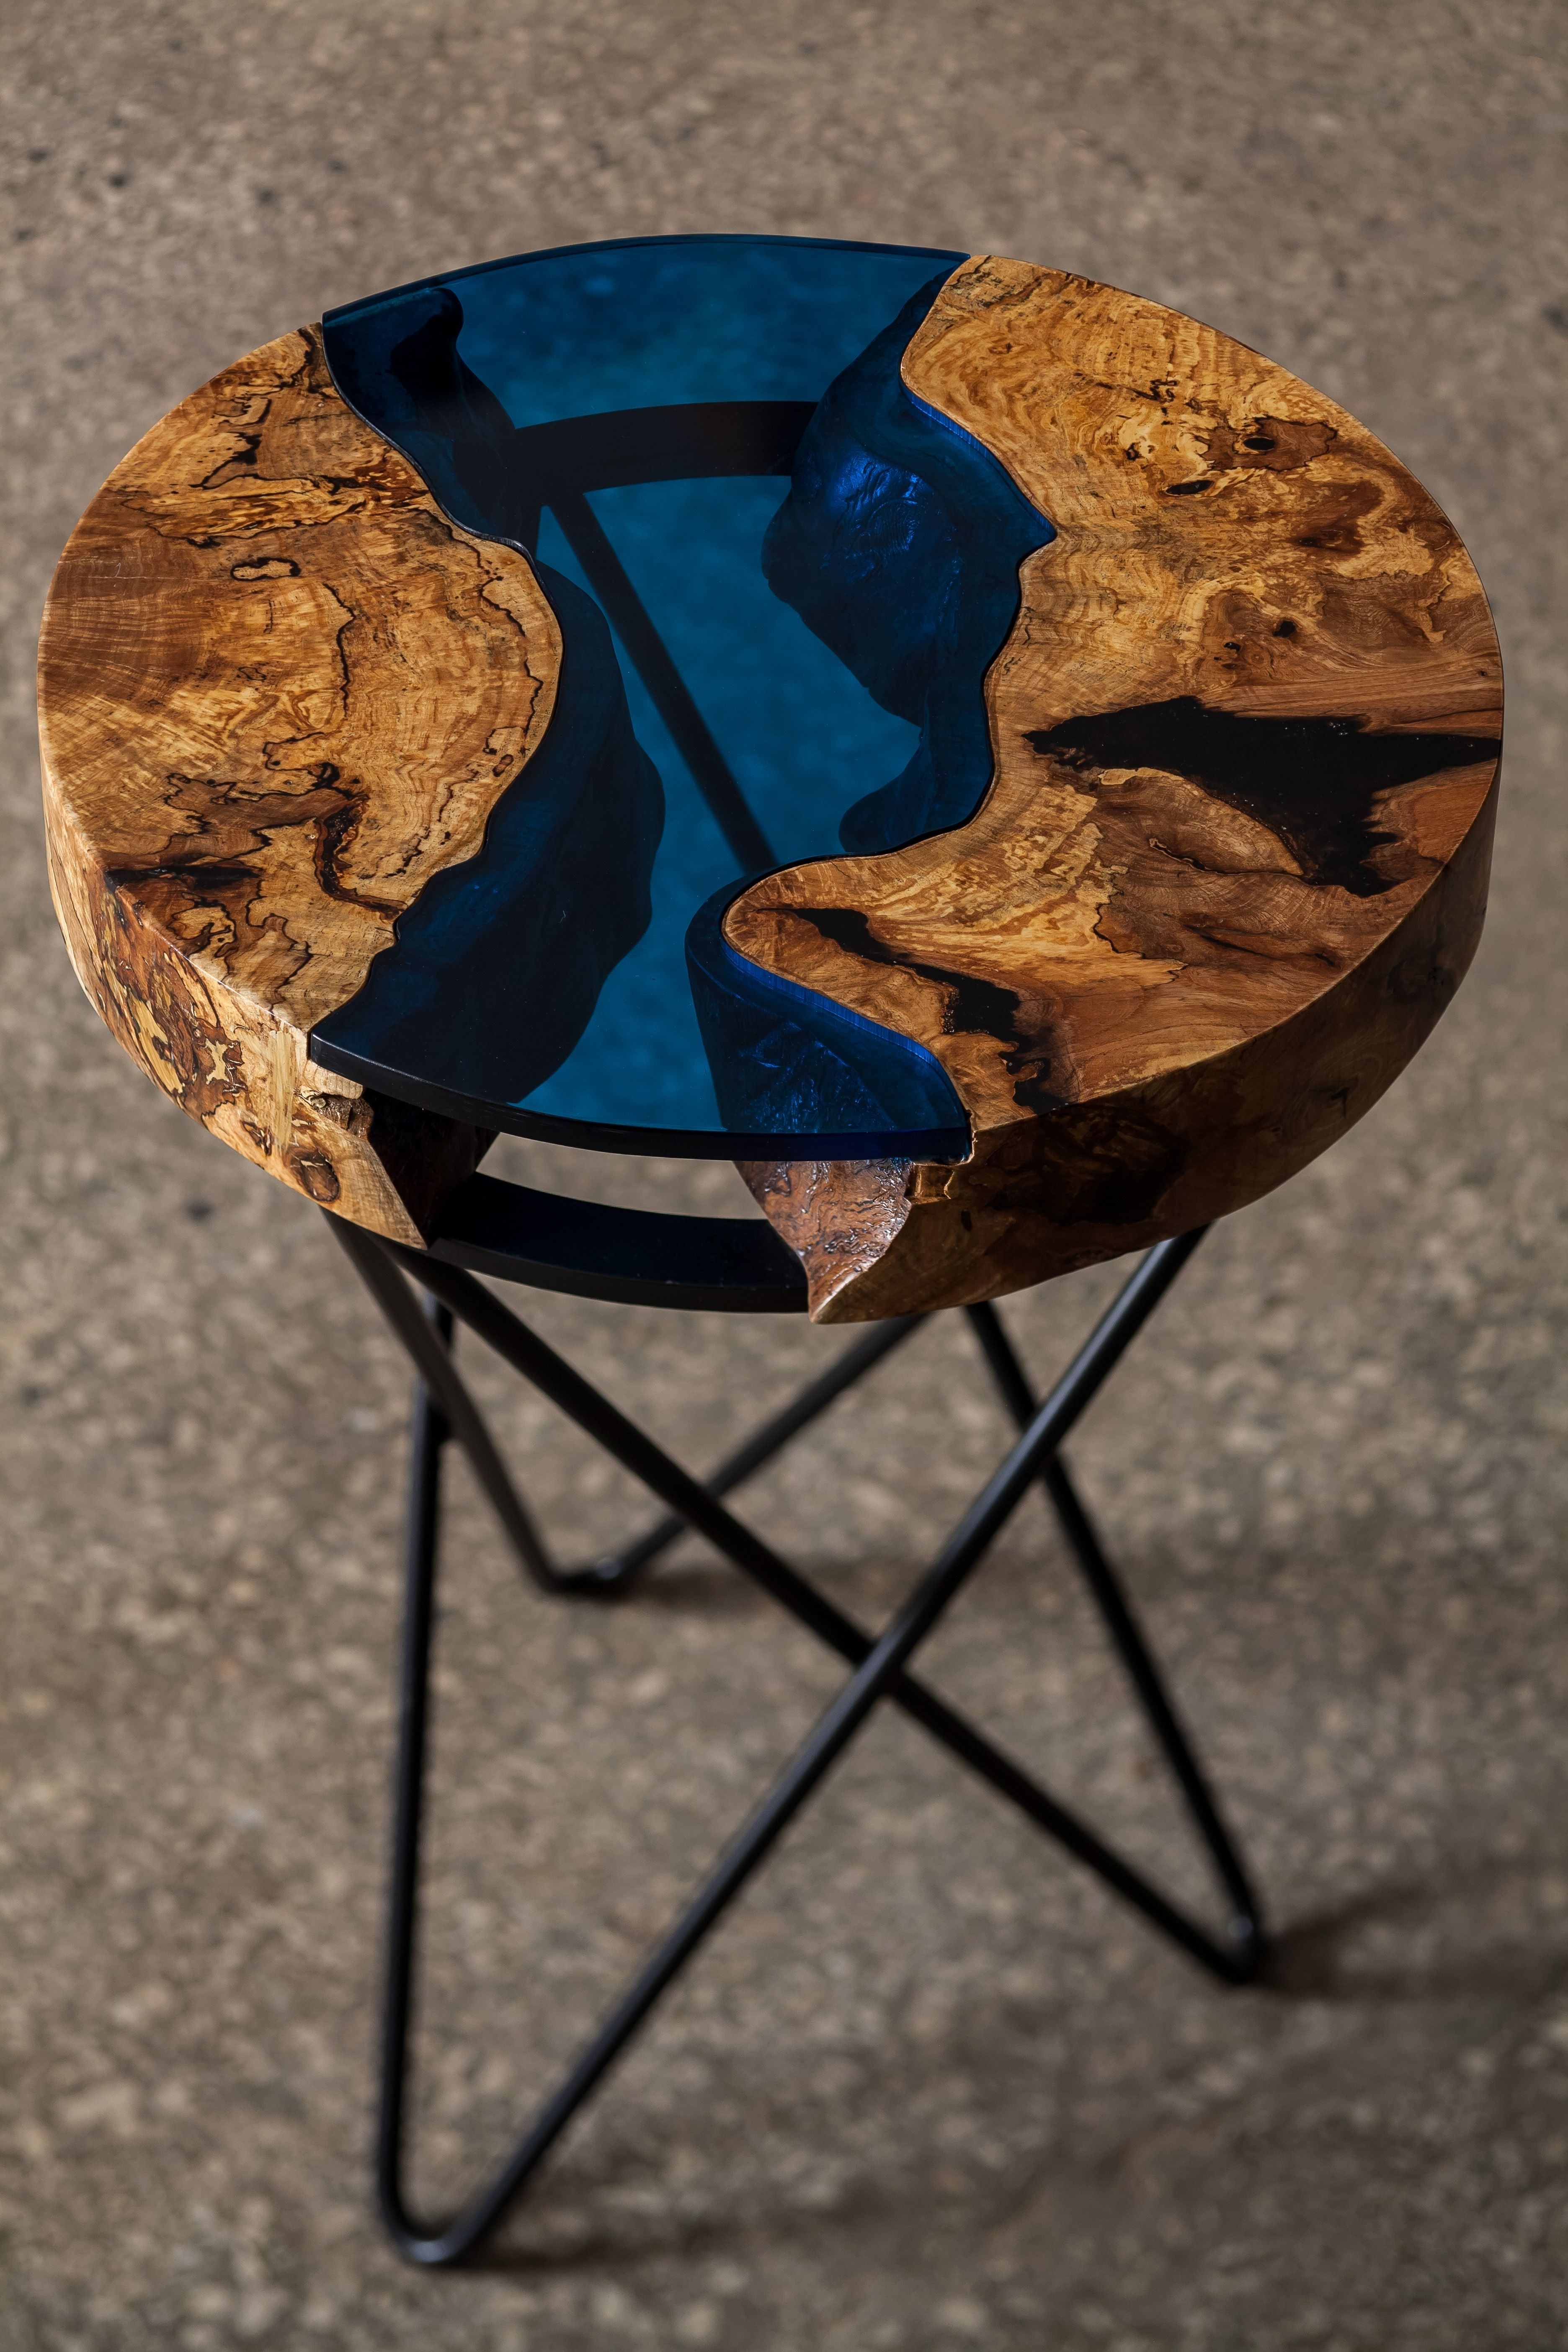 Aqua Side Table, Made From Ash Tree And Blue Acrylic, Cracks Filled Pertaining To Most Recently Released Stately Acrylic Coffee Tables (View 15 of 20)